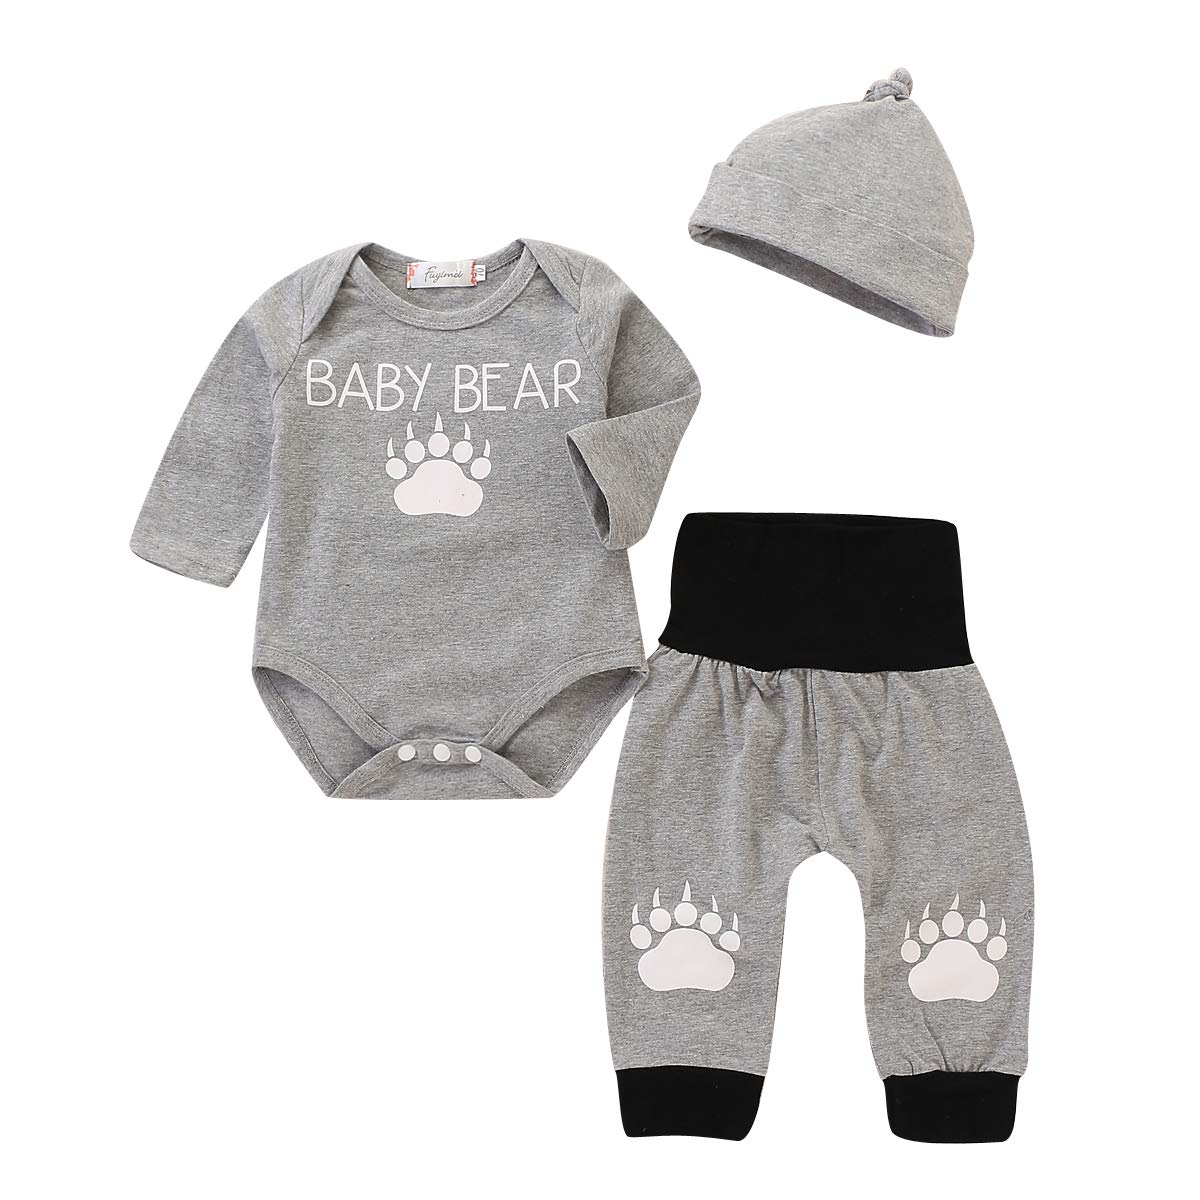 3Pcs Newborn Baby Boy Outfits Infant Toddler Clothes Romper Jumpsuit Bodysuit Clothing Set